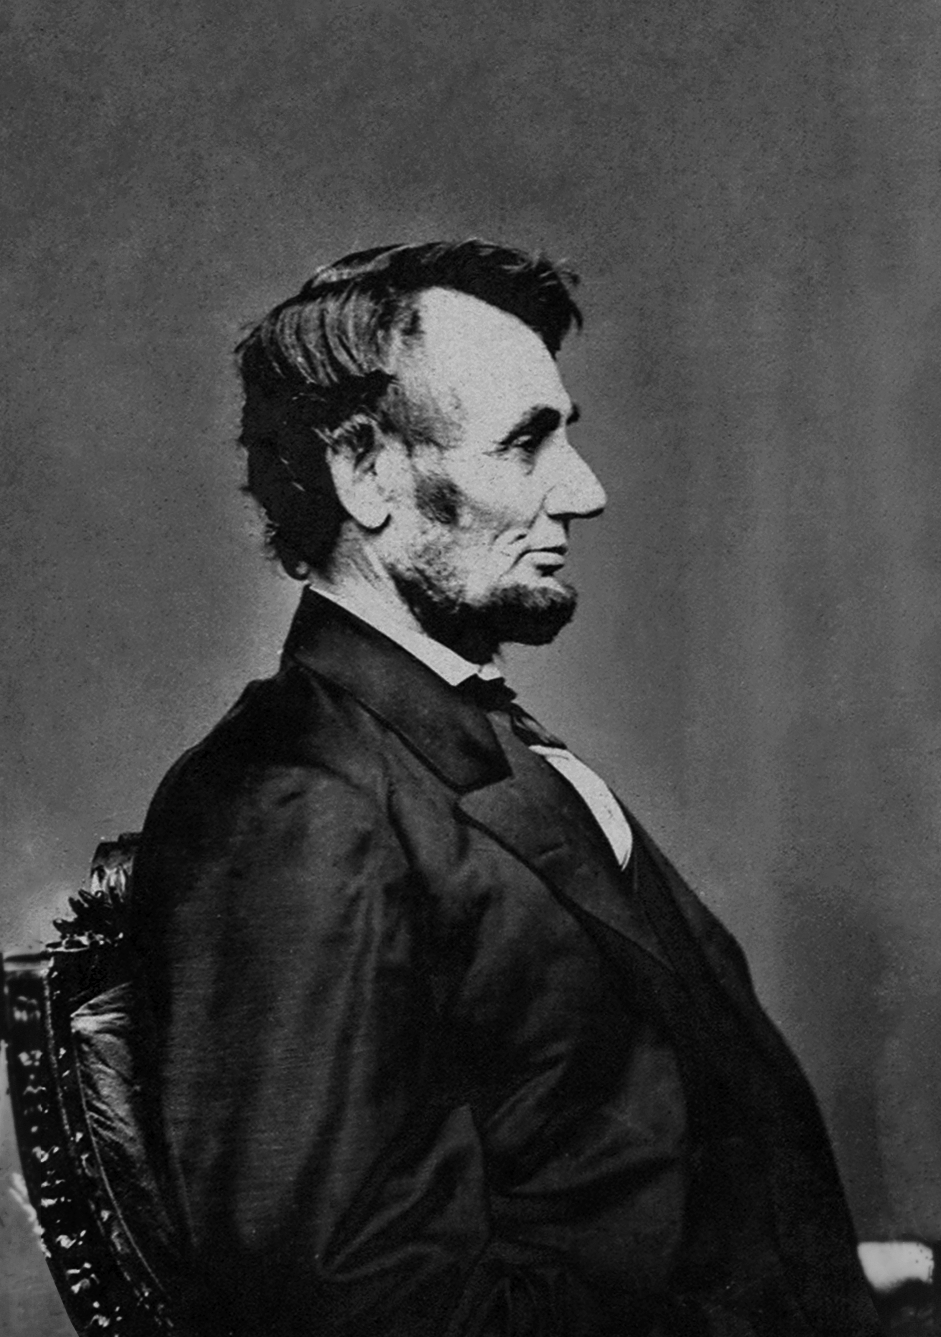 Profile of Abraham Lincoln used for the Lincoln-head cent by Anthony Berger 9 February 1864